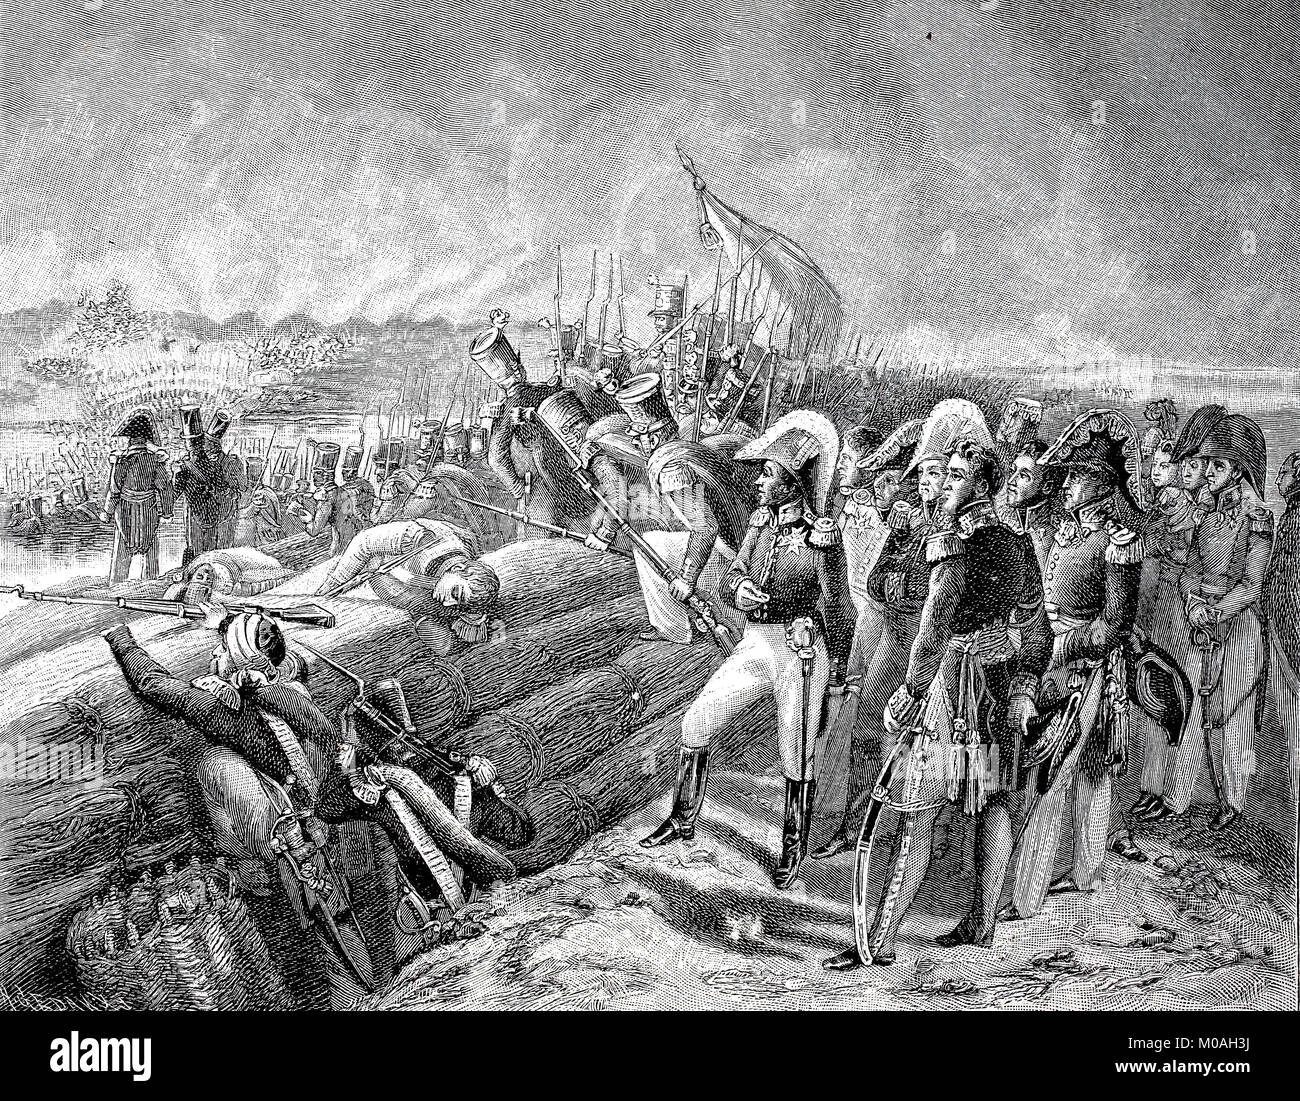 At the Battle of Trocadero on August 31, 1823, the French army captured the  fortress on the island of Trocadero in front of the Spanish city of Cádiz  and ...